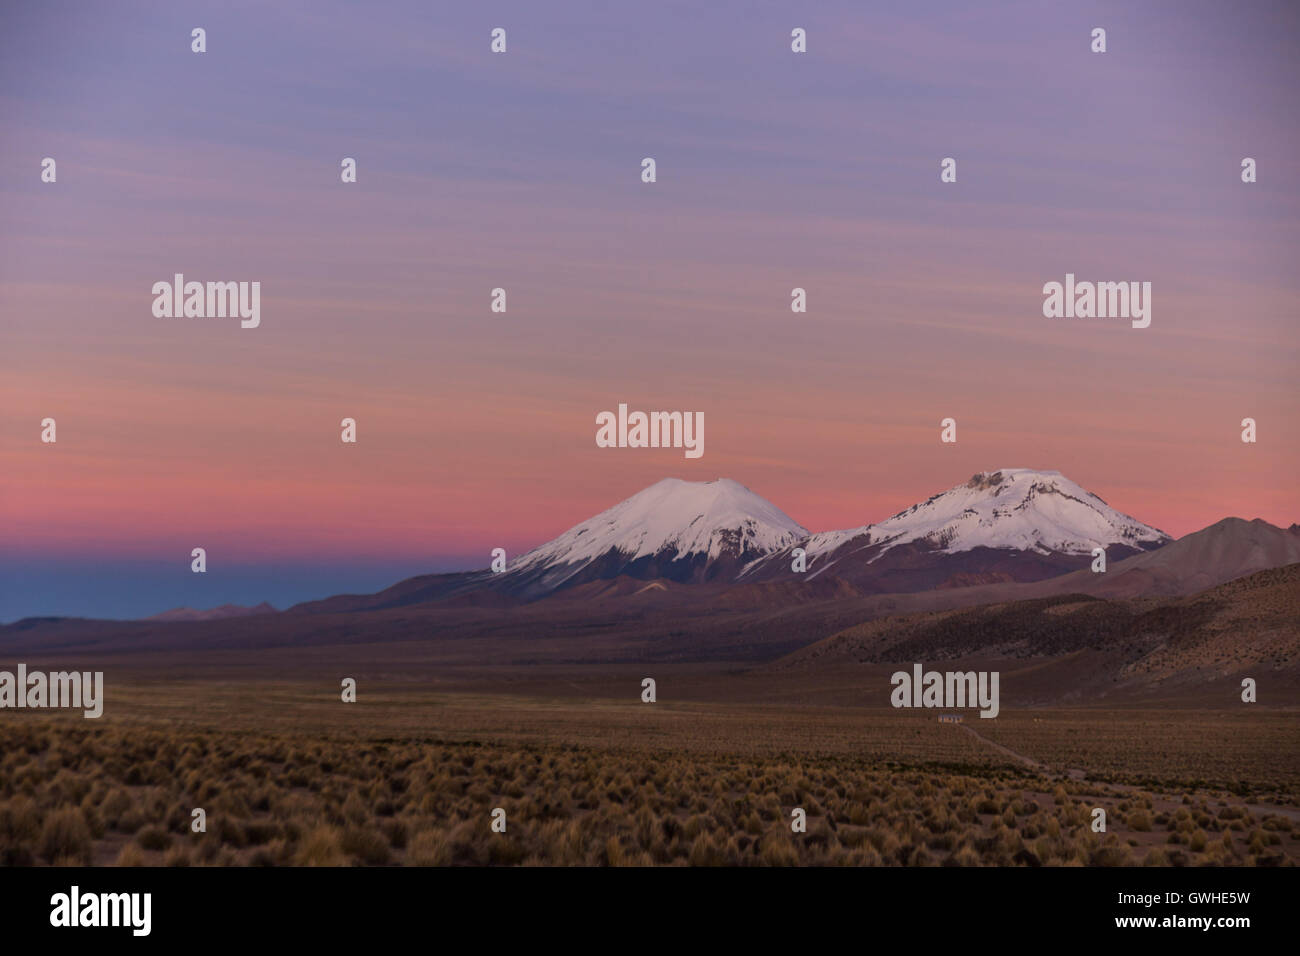 Sunset in Andes. Parinacota and Pomerade volcanos. High Andean landscape in the Andes. High Andean tundra landscape in the mount Stock Photo